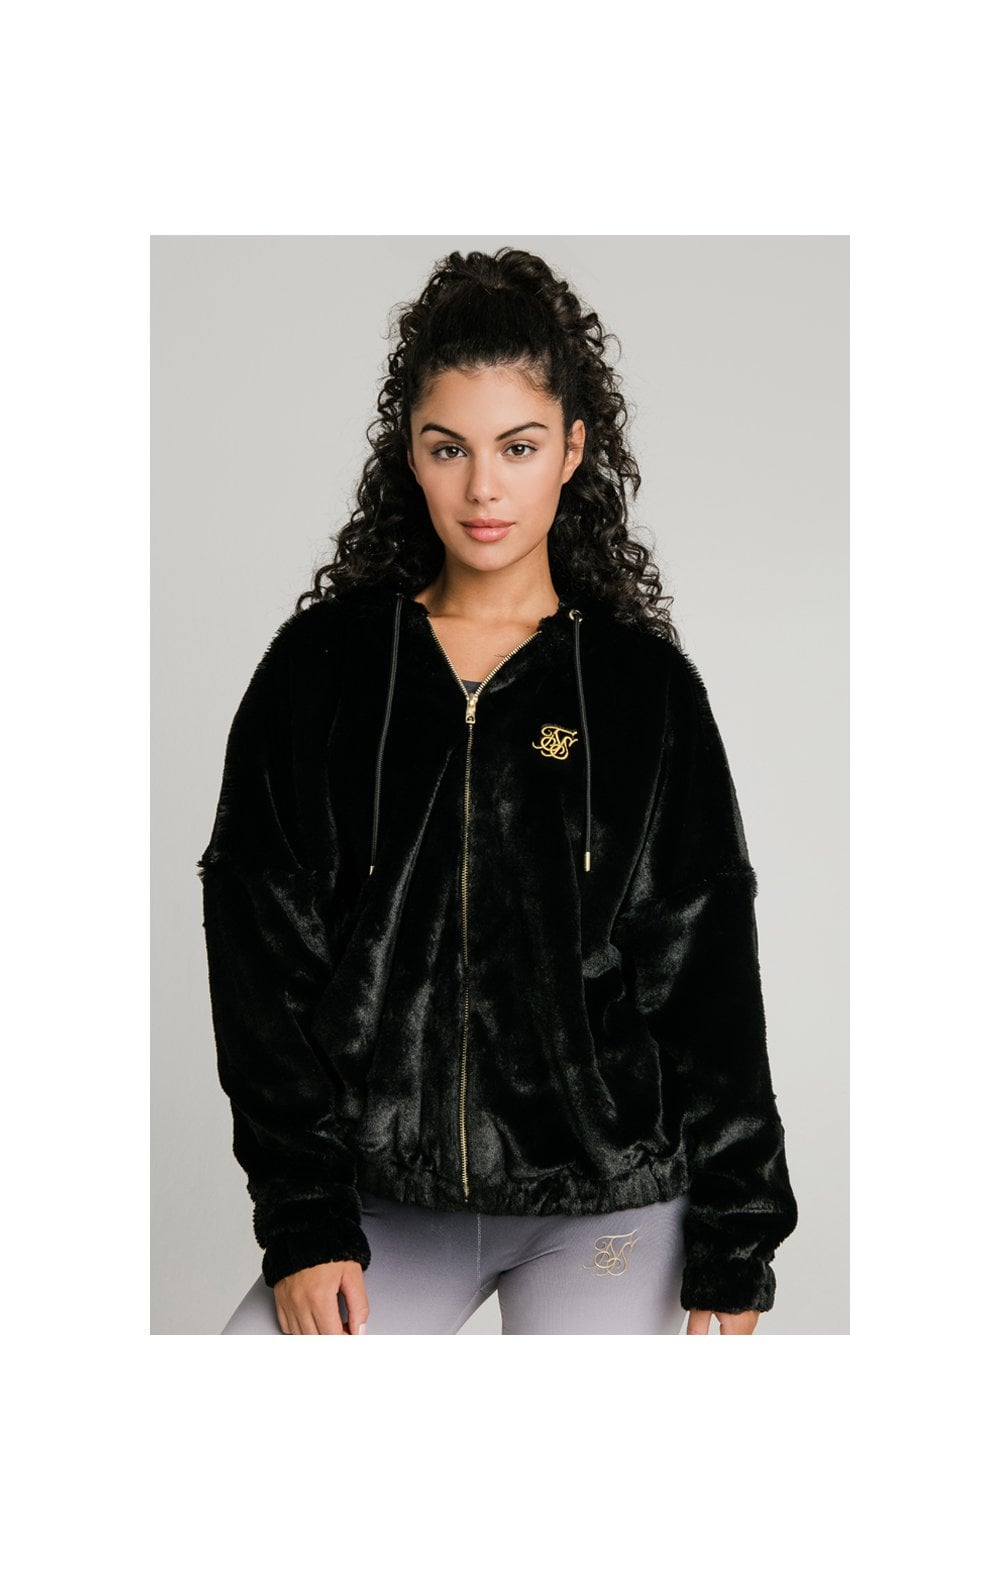 SikSilk Luxury Faux Fur Jacket - Black